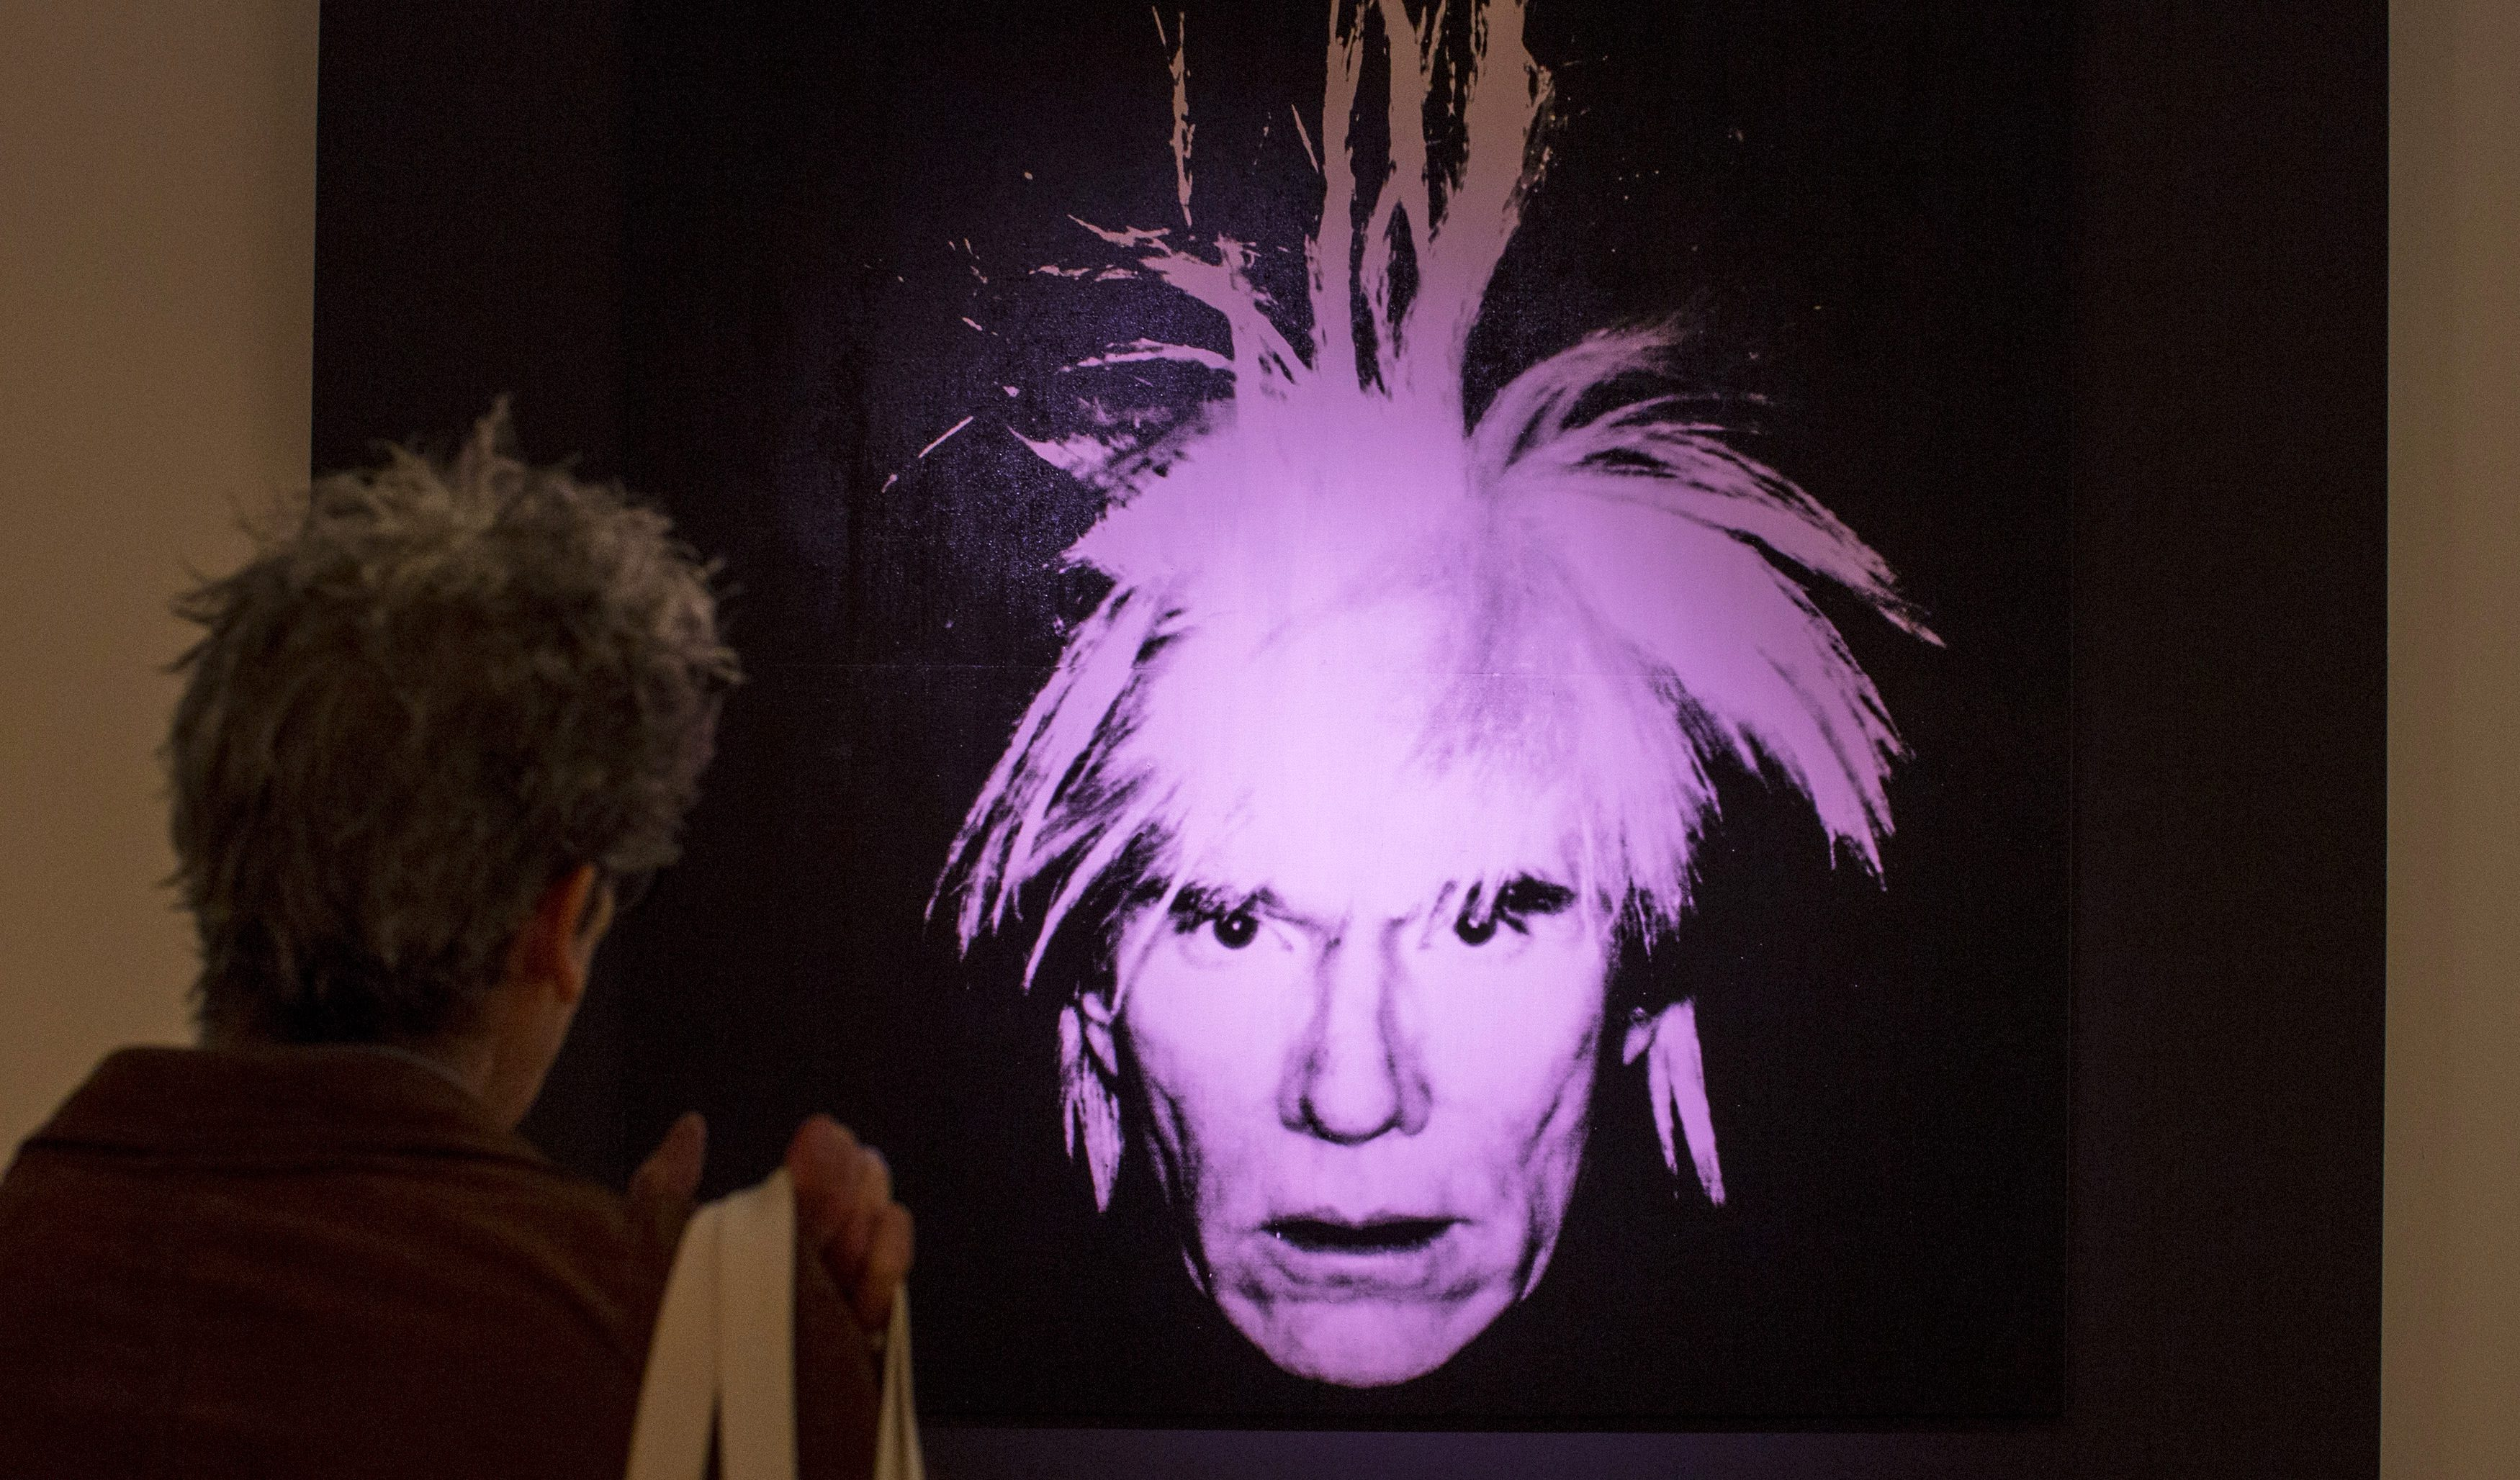 """A man examines """"Self-Portrait"""" by Andy Warhol during a media preview at Christie's auction house in New York, October 31, 2014. Christie's estimates its postwar and contemporary art auction will total more than $600 million, the highest pre-sale estimate ever for any single sale. REUTERS/Brendan McDermid (UNITED STATES - Tags: ENTERTAINMENT SOCIETY) - GM1EAB10BG701"""